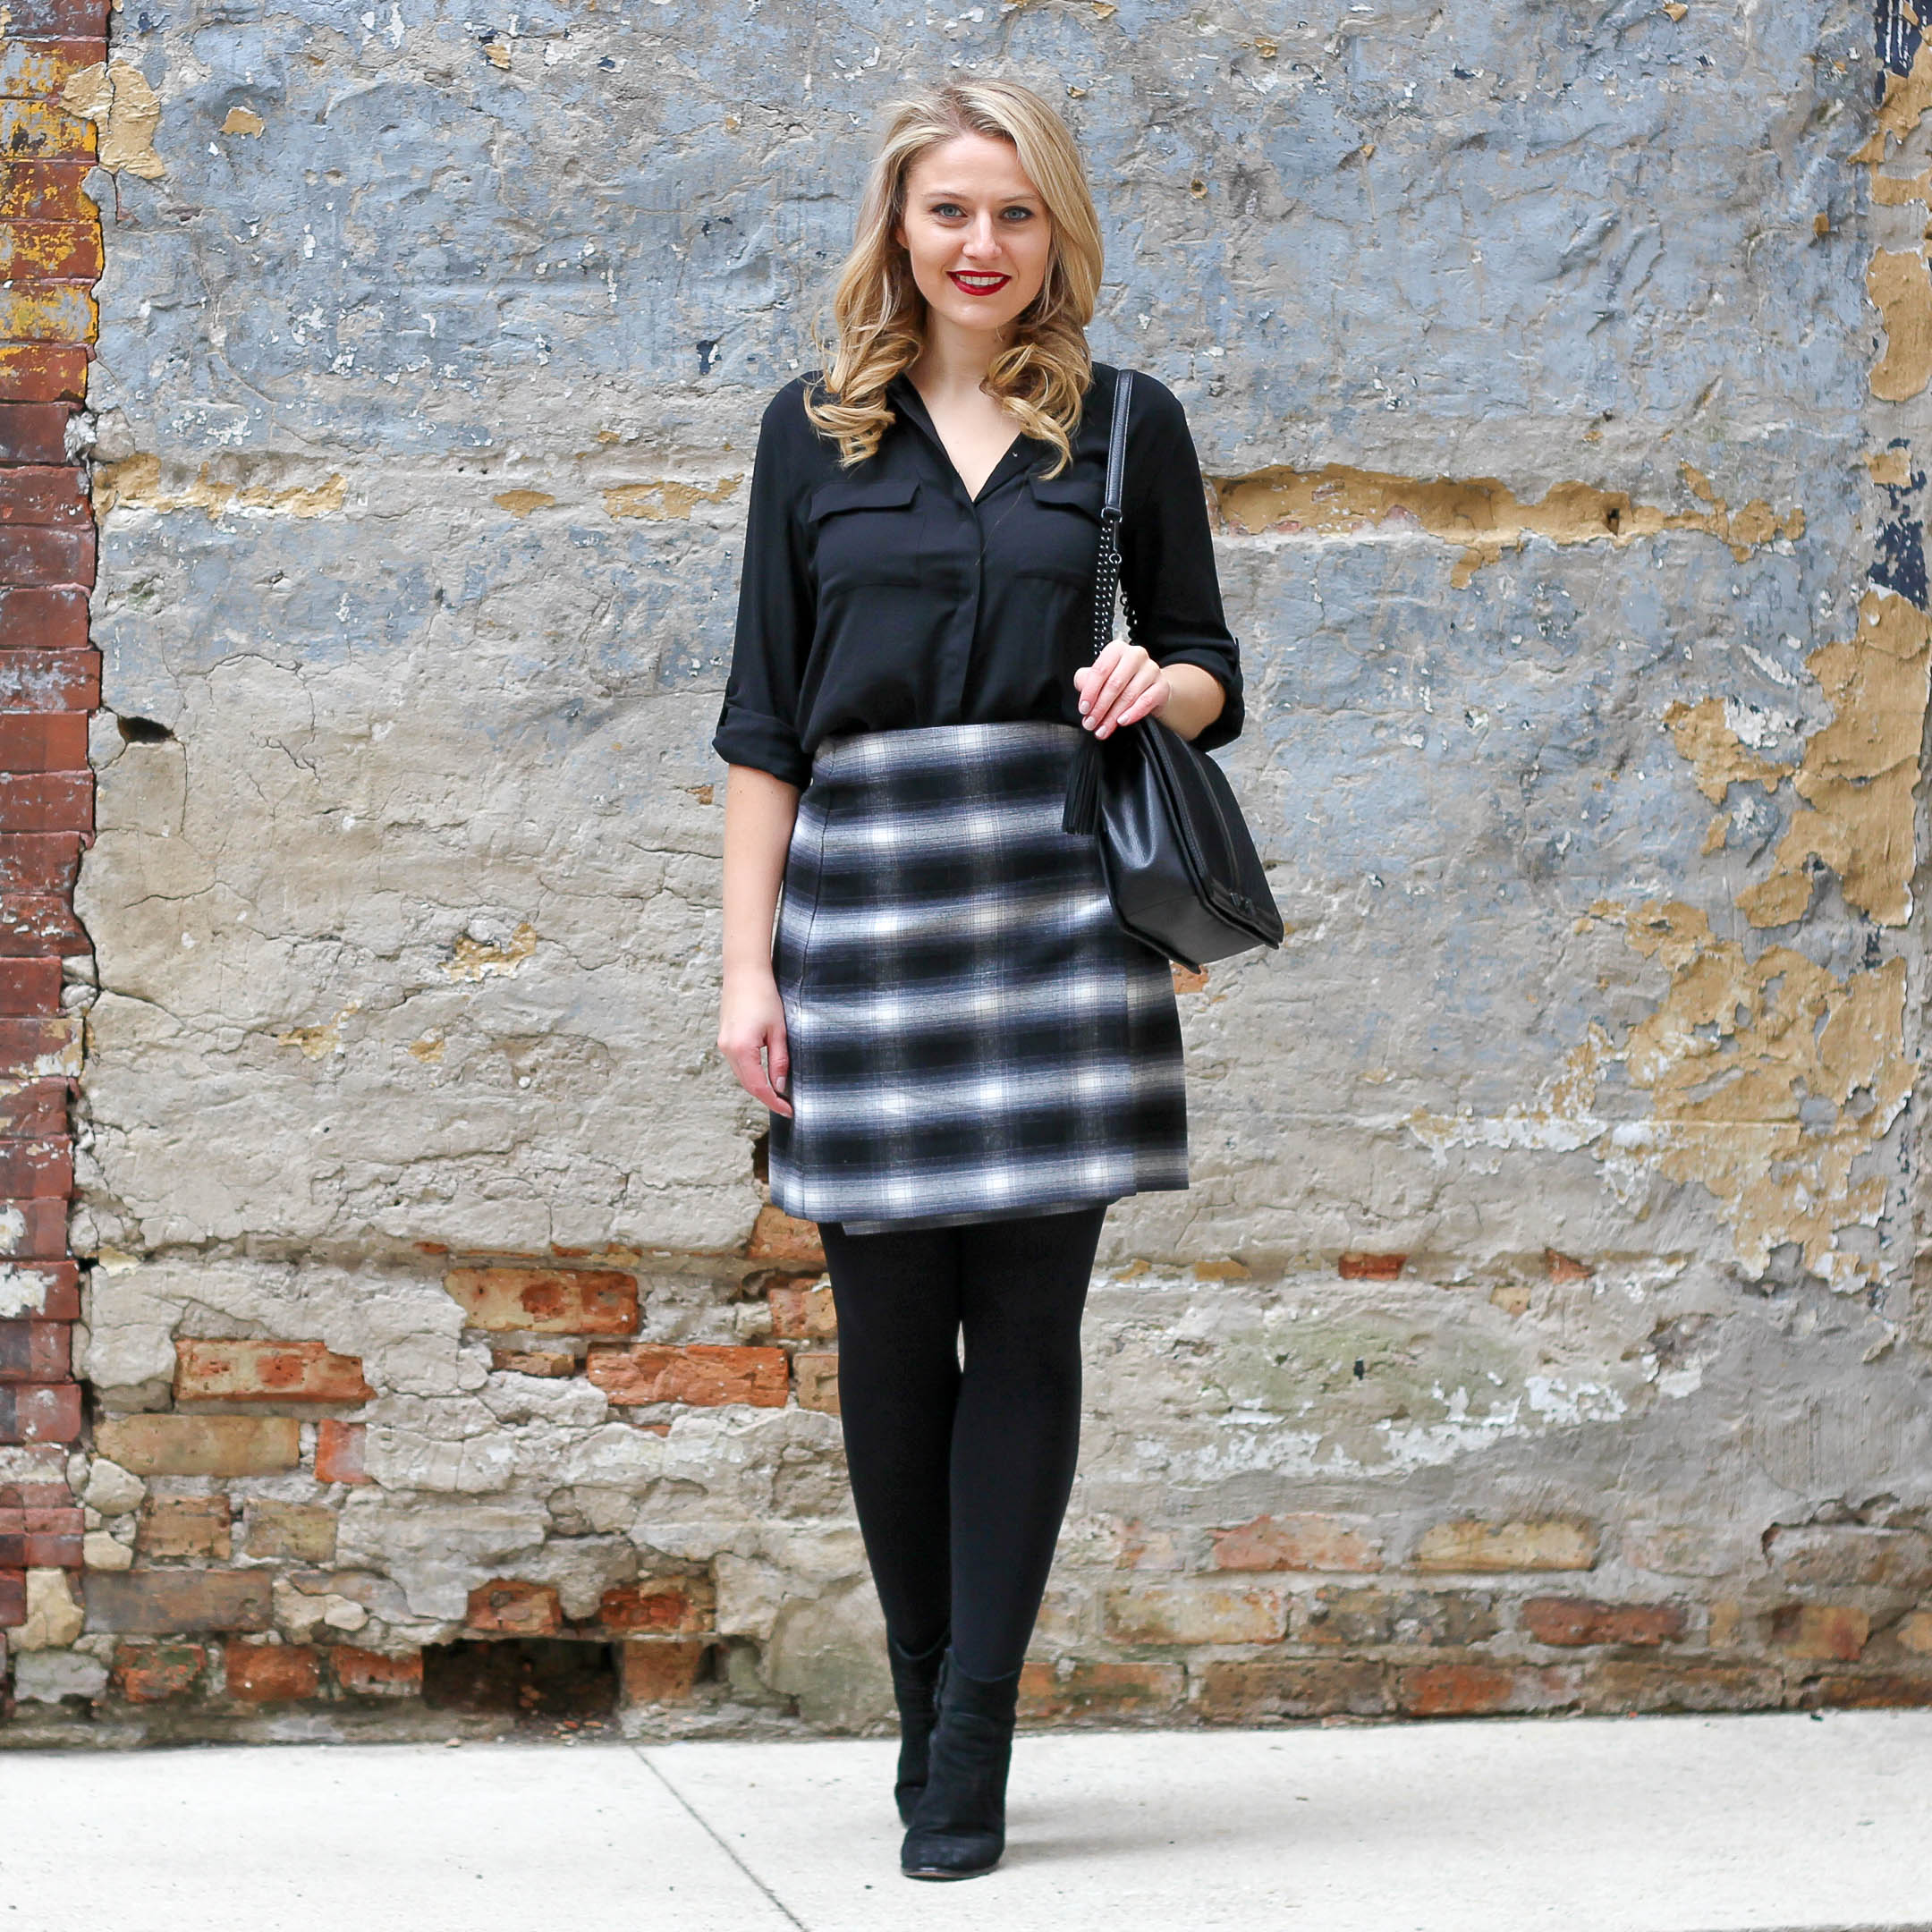 A fresh way to wear plaid this month to transition from winter to spring